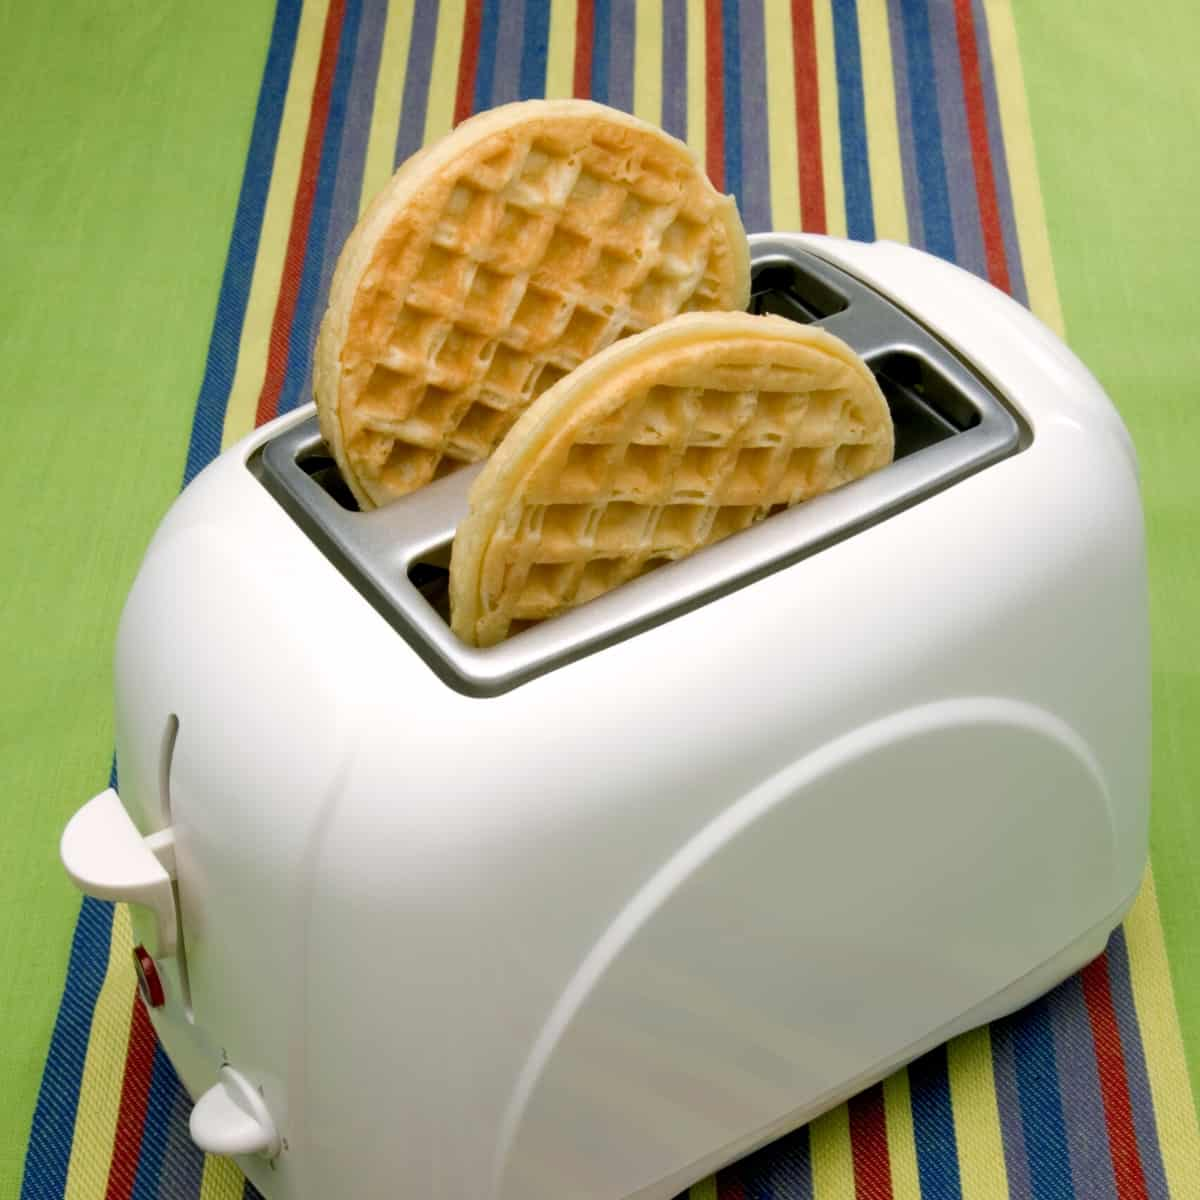 waffles in a white toaster